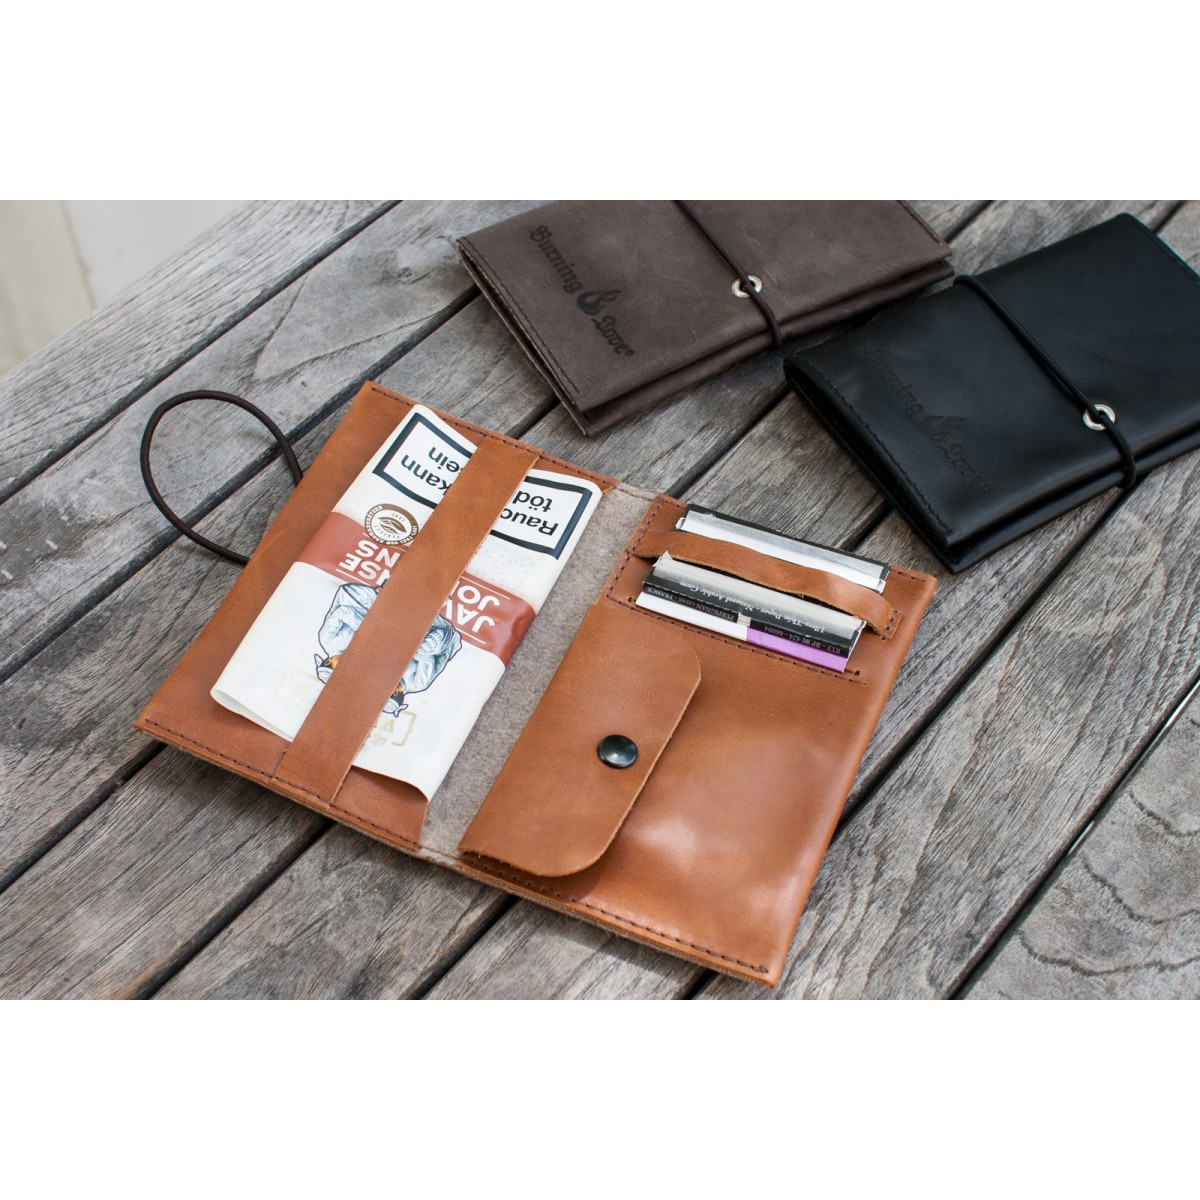 Love Leather Smoking Pouch - Leder Tabaktasche (cognac)